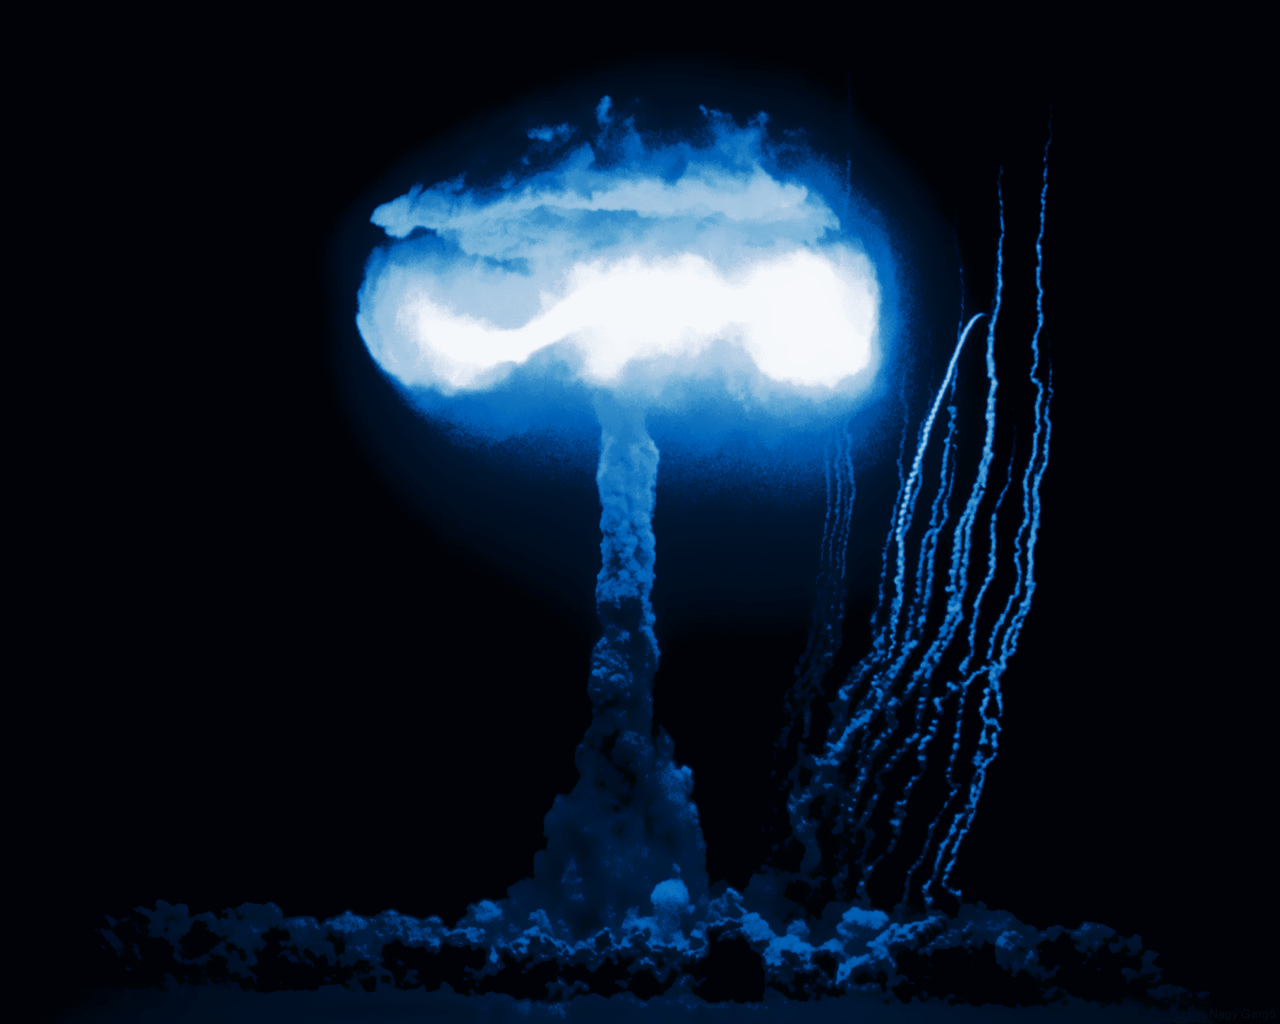 hd wallpapers atomic explosion - photo #15